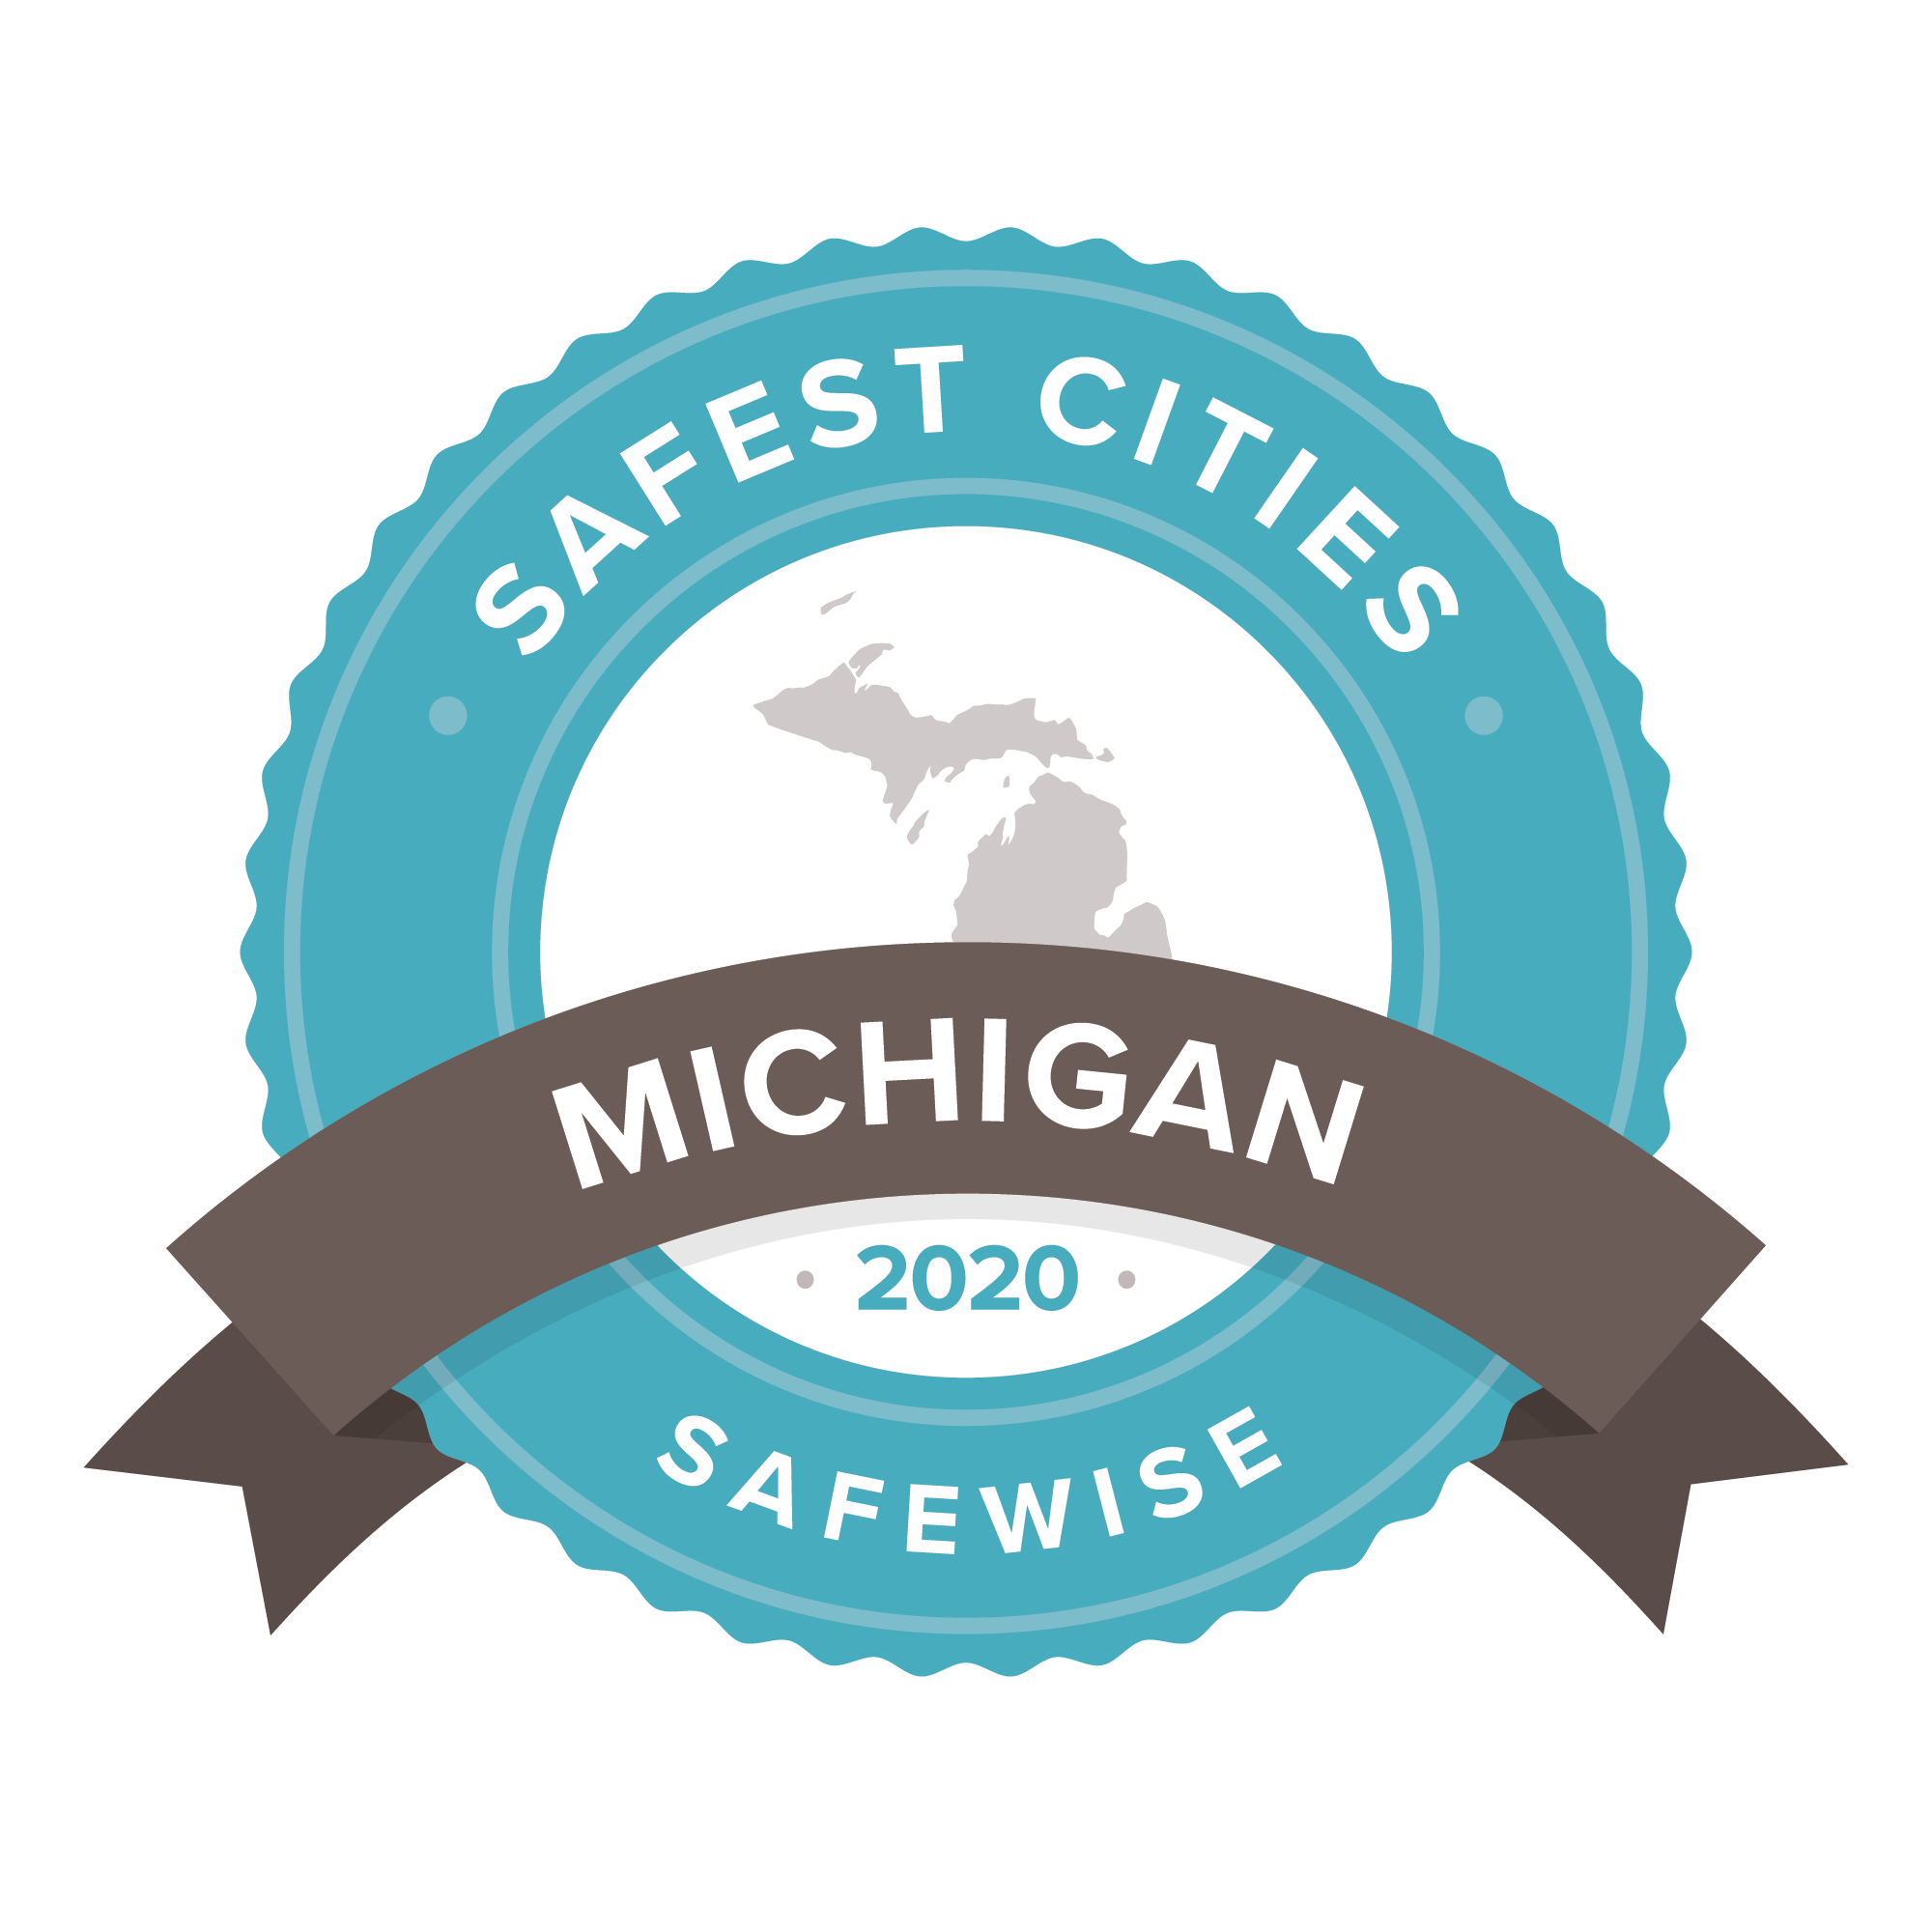 Safest Cities Michigan badge